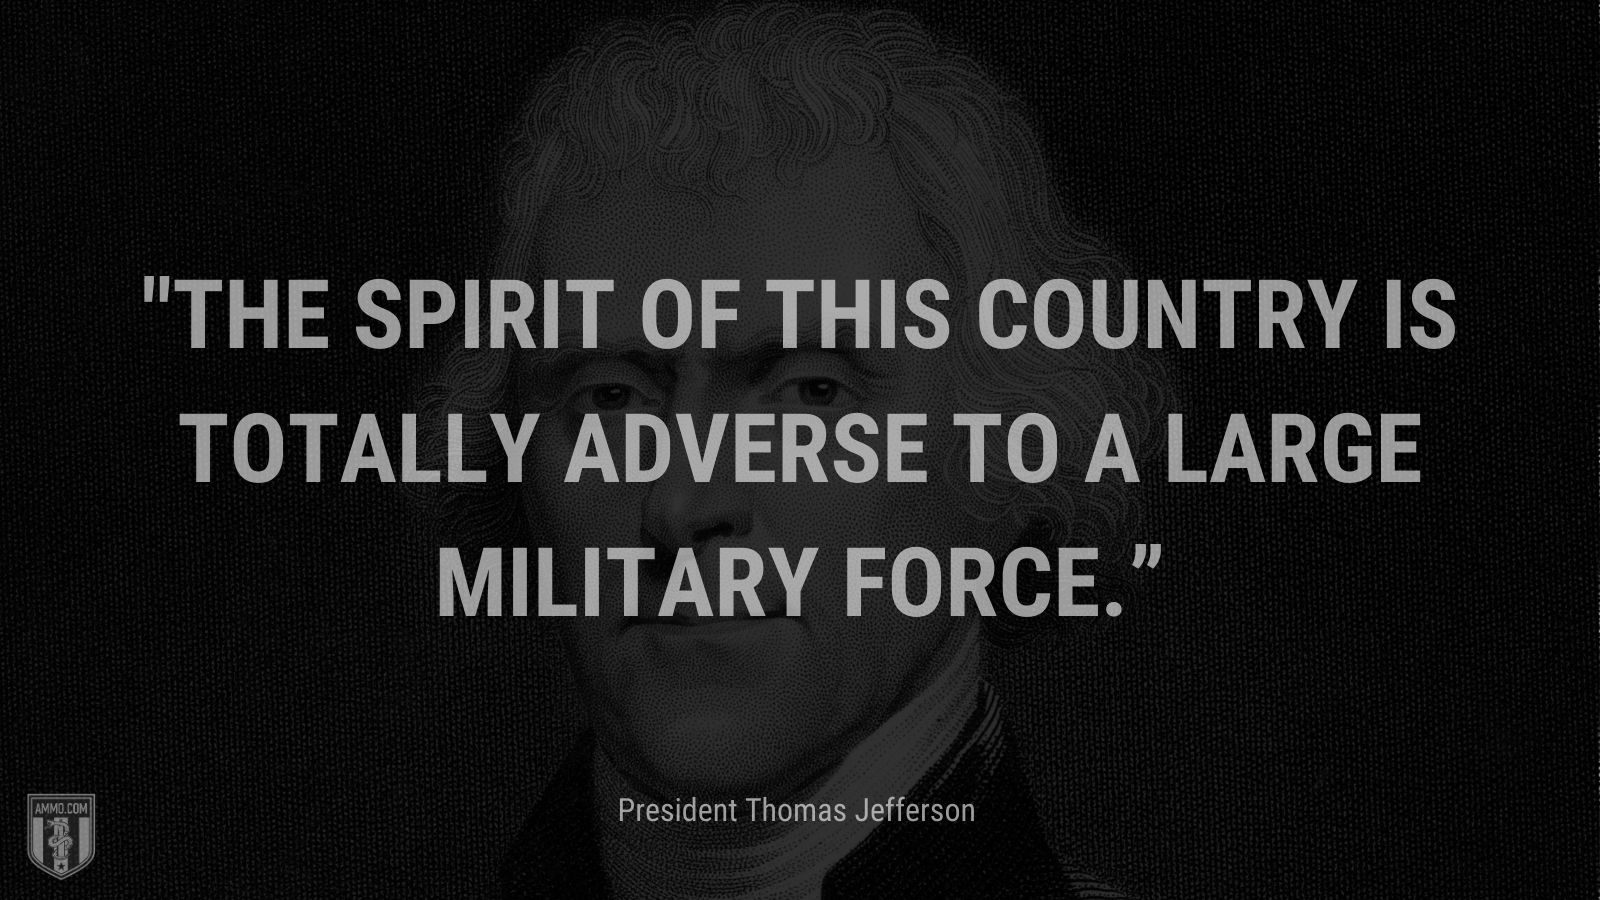 """""""The spirit of this country is totally adverse to a large military force."""" - President Thomas Jefferson"""